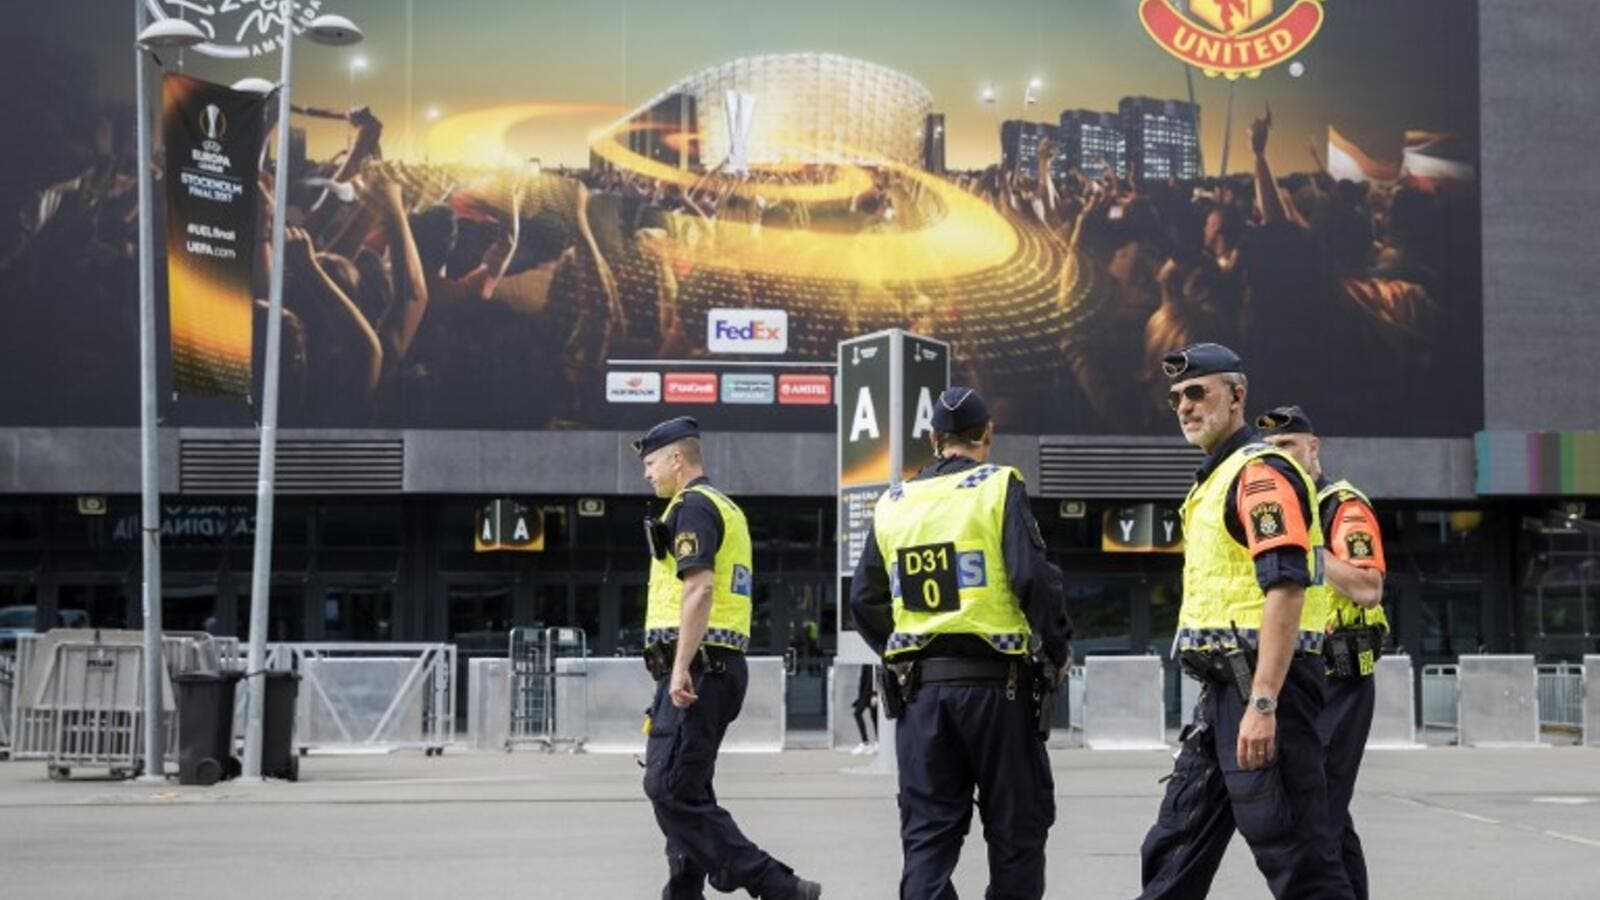 Police patrol outside the Friends arena in Stockholm on May 23, 2017, on the eve of the UEFA Europa League football final between Ajax and Manchester United.